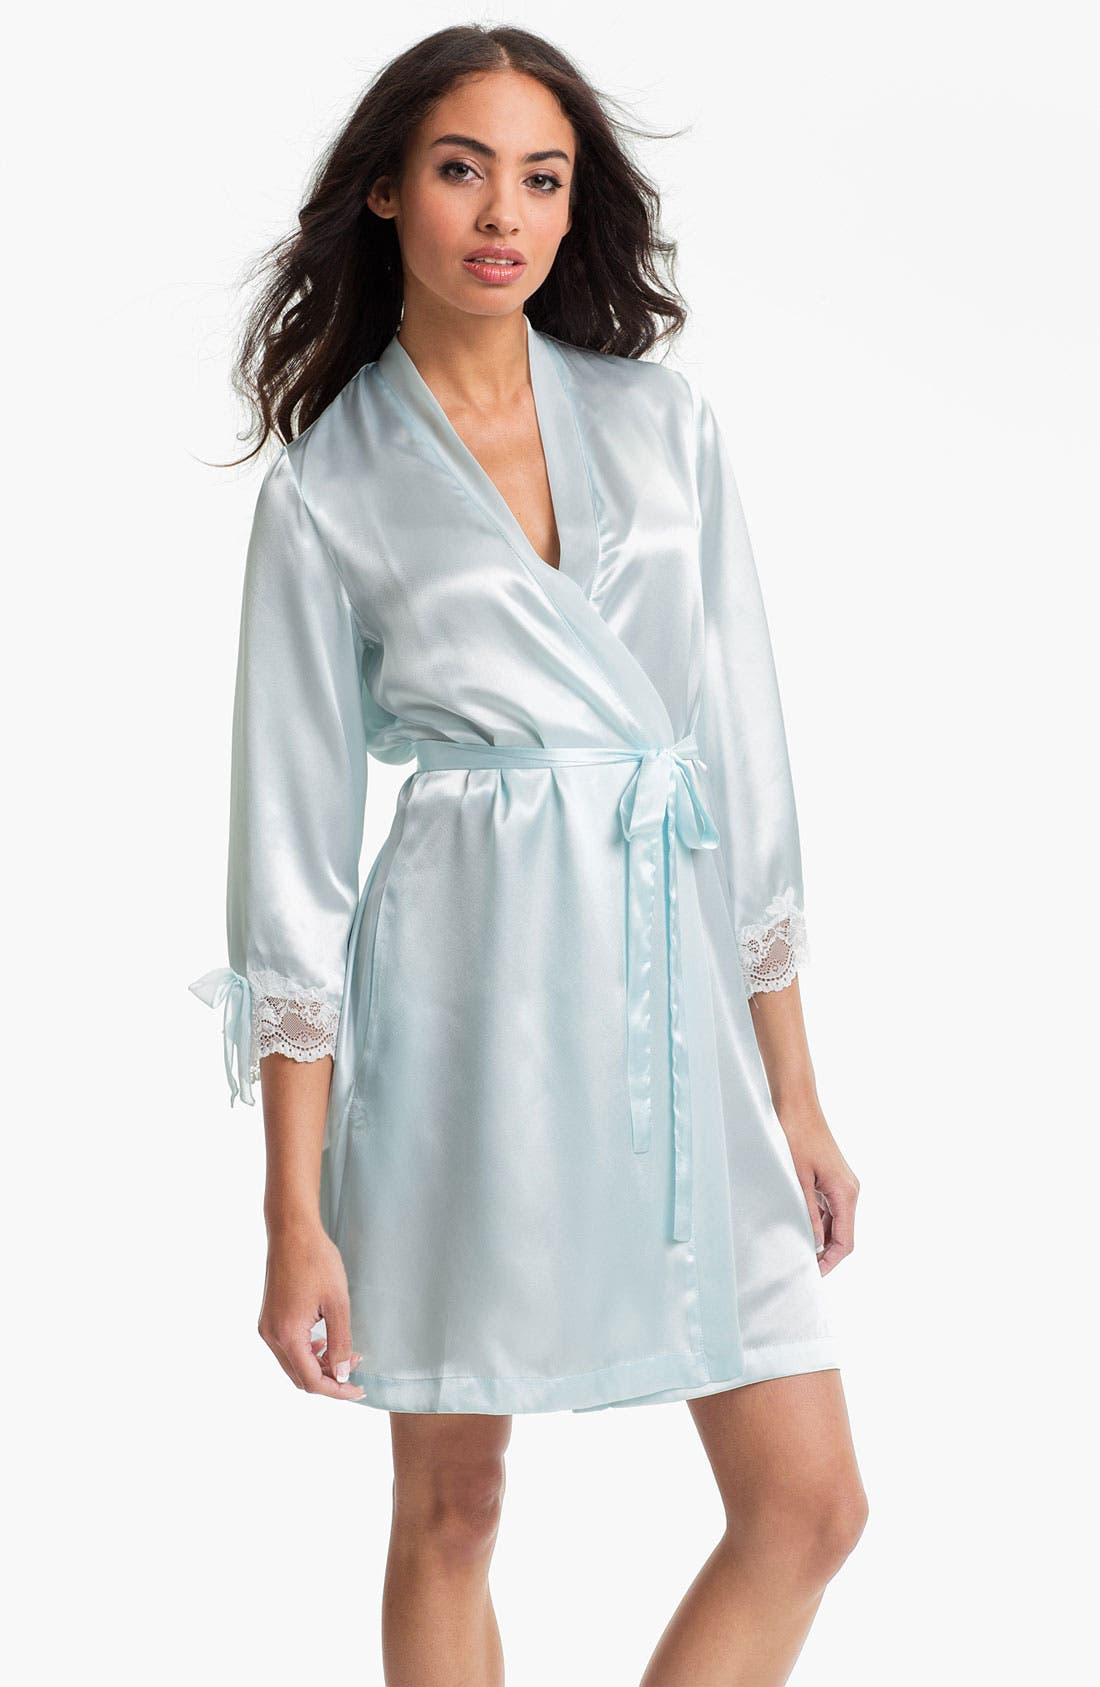 Main Image - Oscar de la Renta Sleepwear 'Lovely in Lace' Short Robe